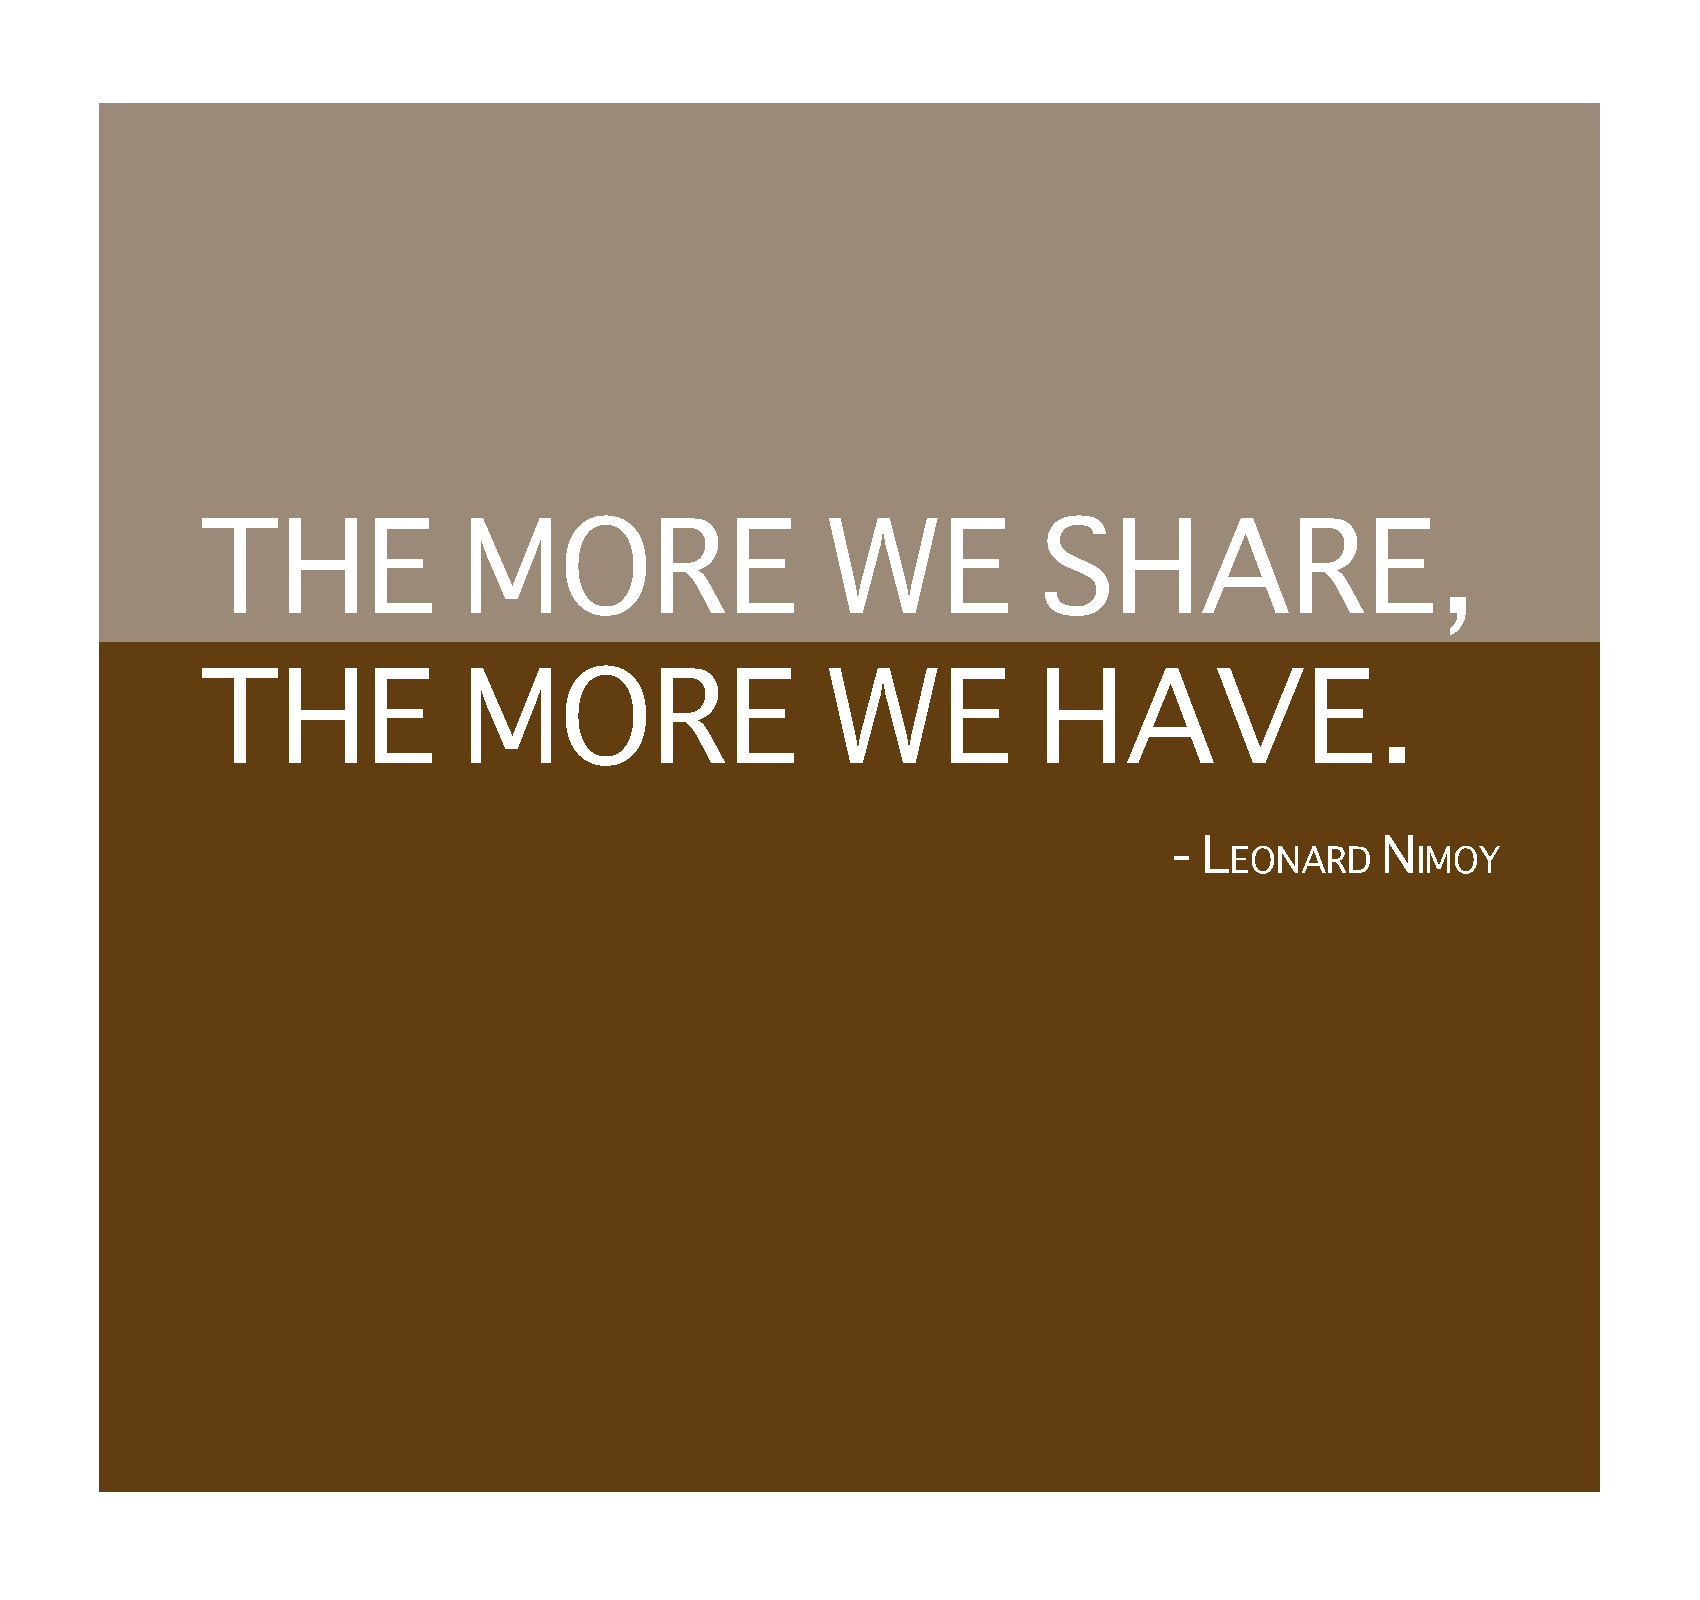 Famous Quotes About Sharing